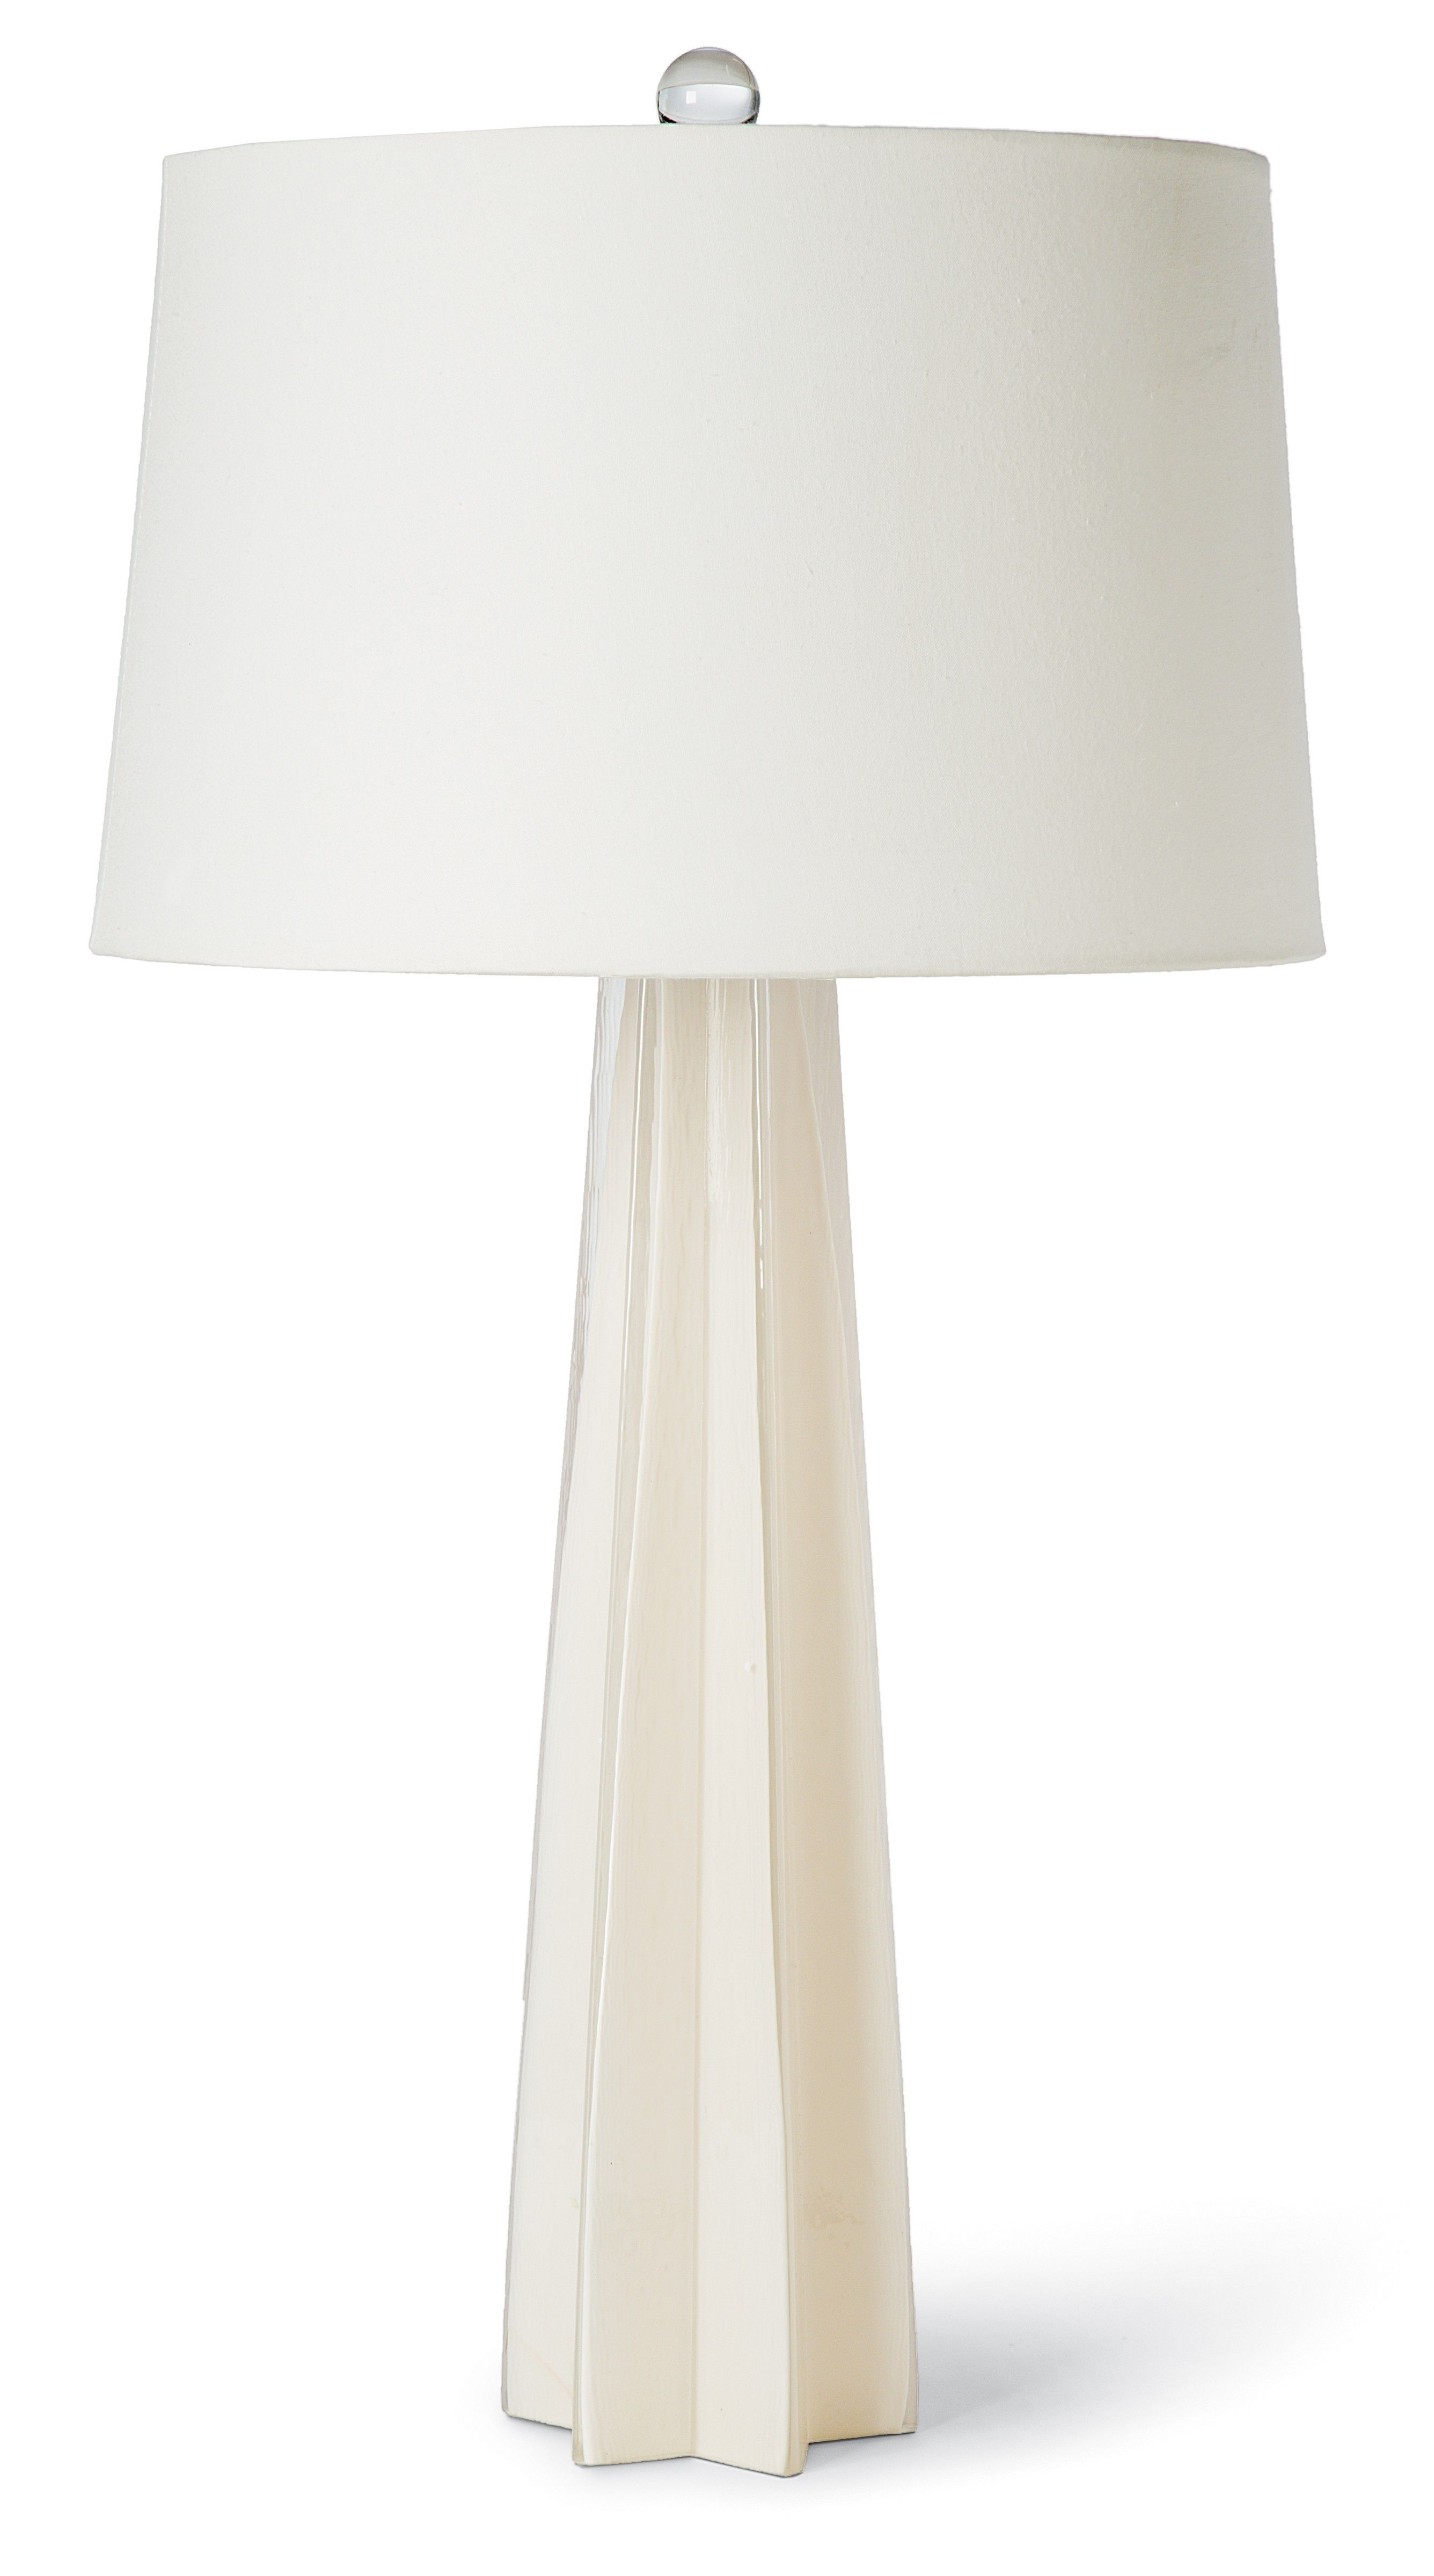 Klara Table Lamp  Lamps living room, Contemporary table lamps